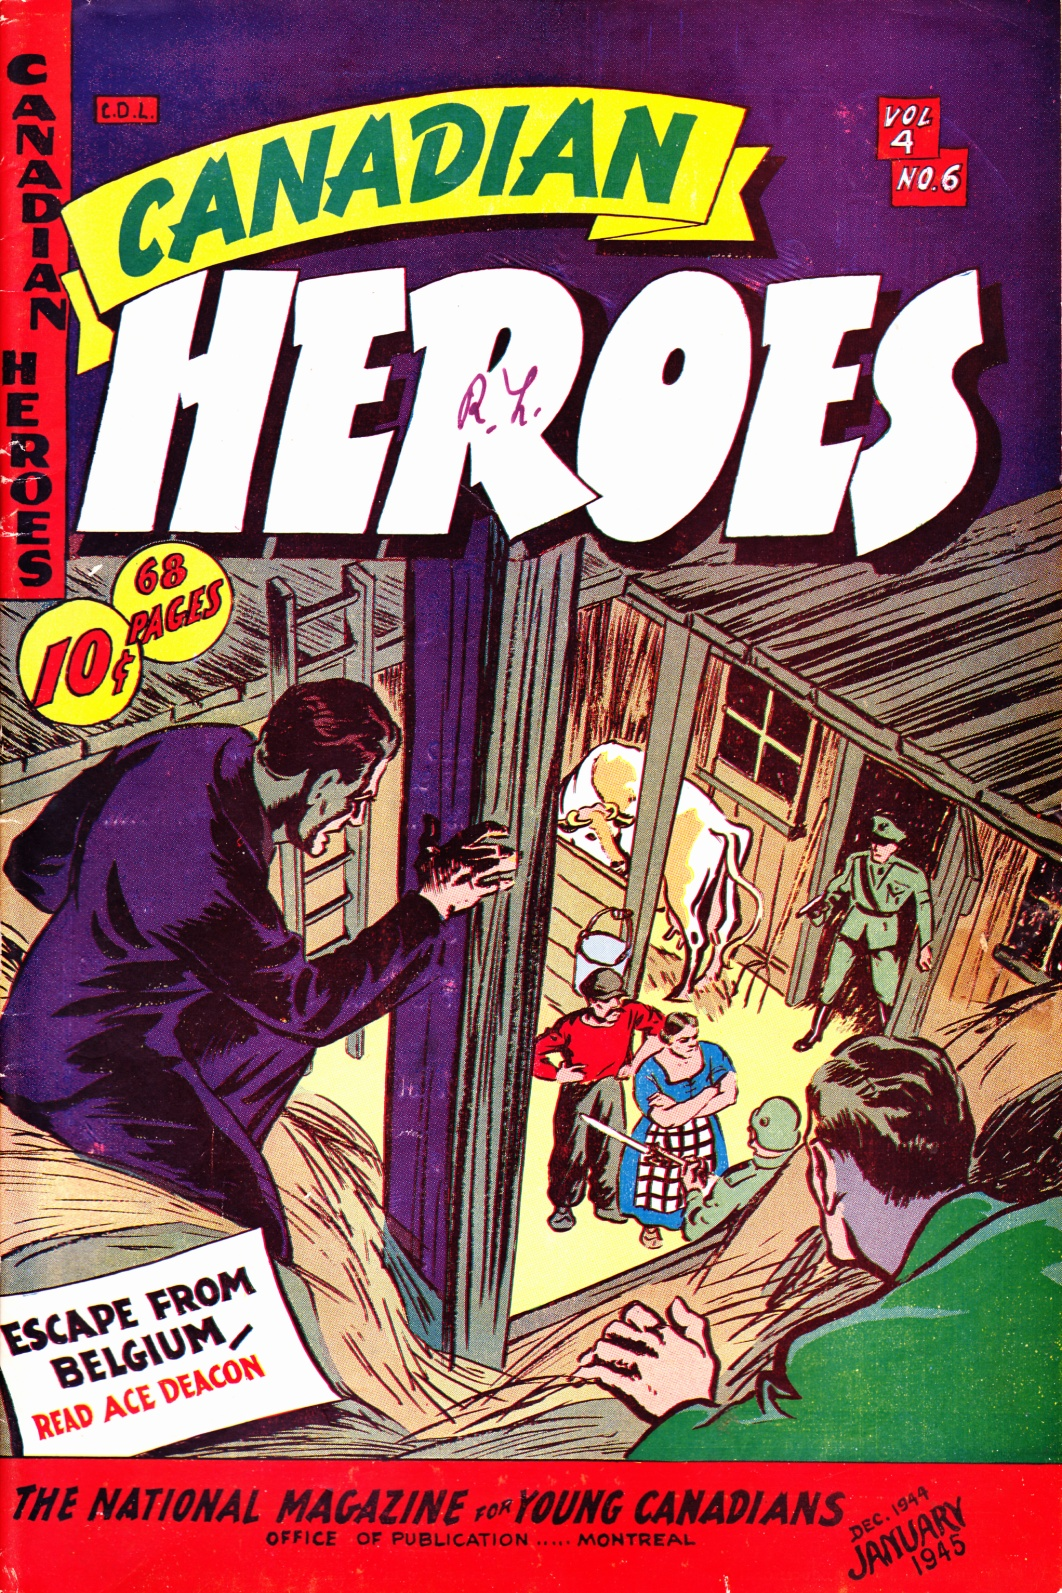 C:\Users\Robert\Documents\CARTOONING ILLUSTRATION ANIMATION\IMAGE COMIC BOOK COVERS\CANADIAN HEROES, 4-6, Jan 1945, fc.jpg